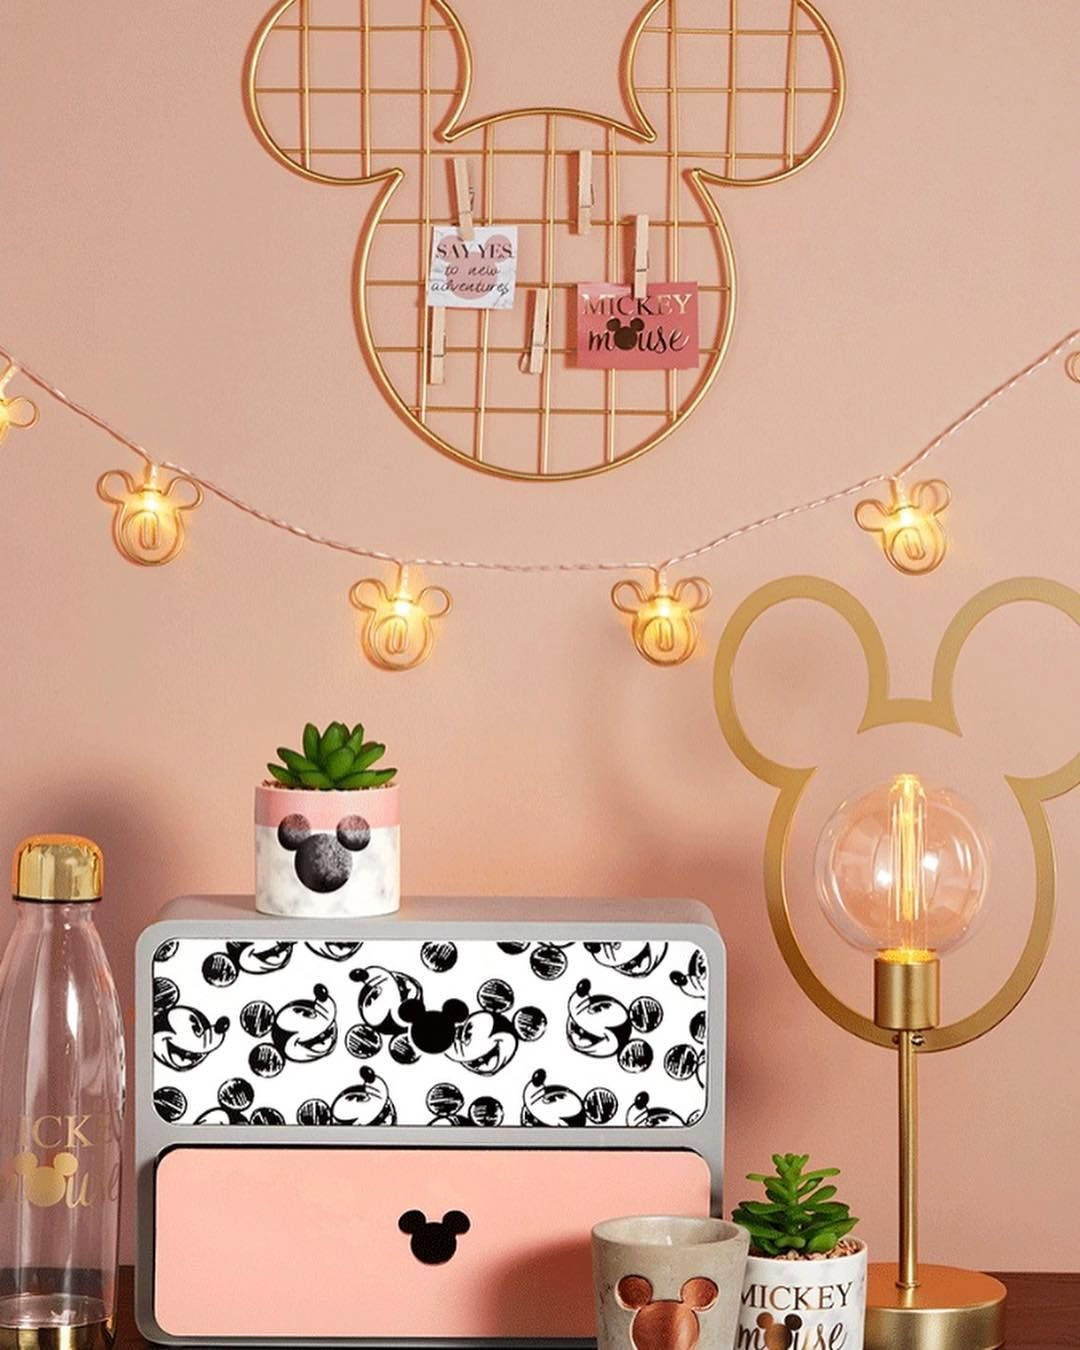 New Primark Disney Collection Is So Cute Disney Home I Disney Decor I Disney Decorating I Walt Disney Disney Room Decor Disney Decor Bedroom Disney Bedrooms